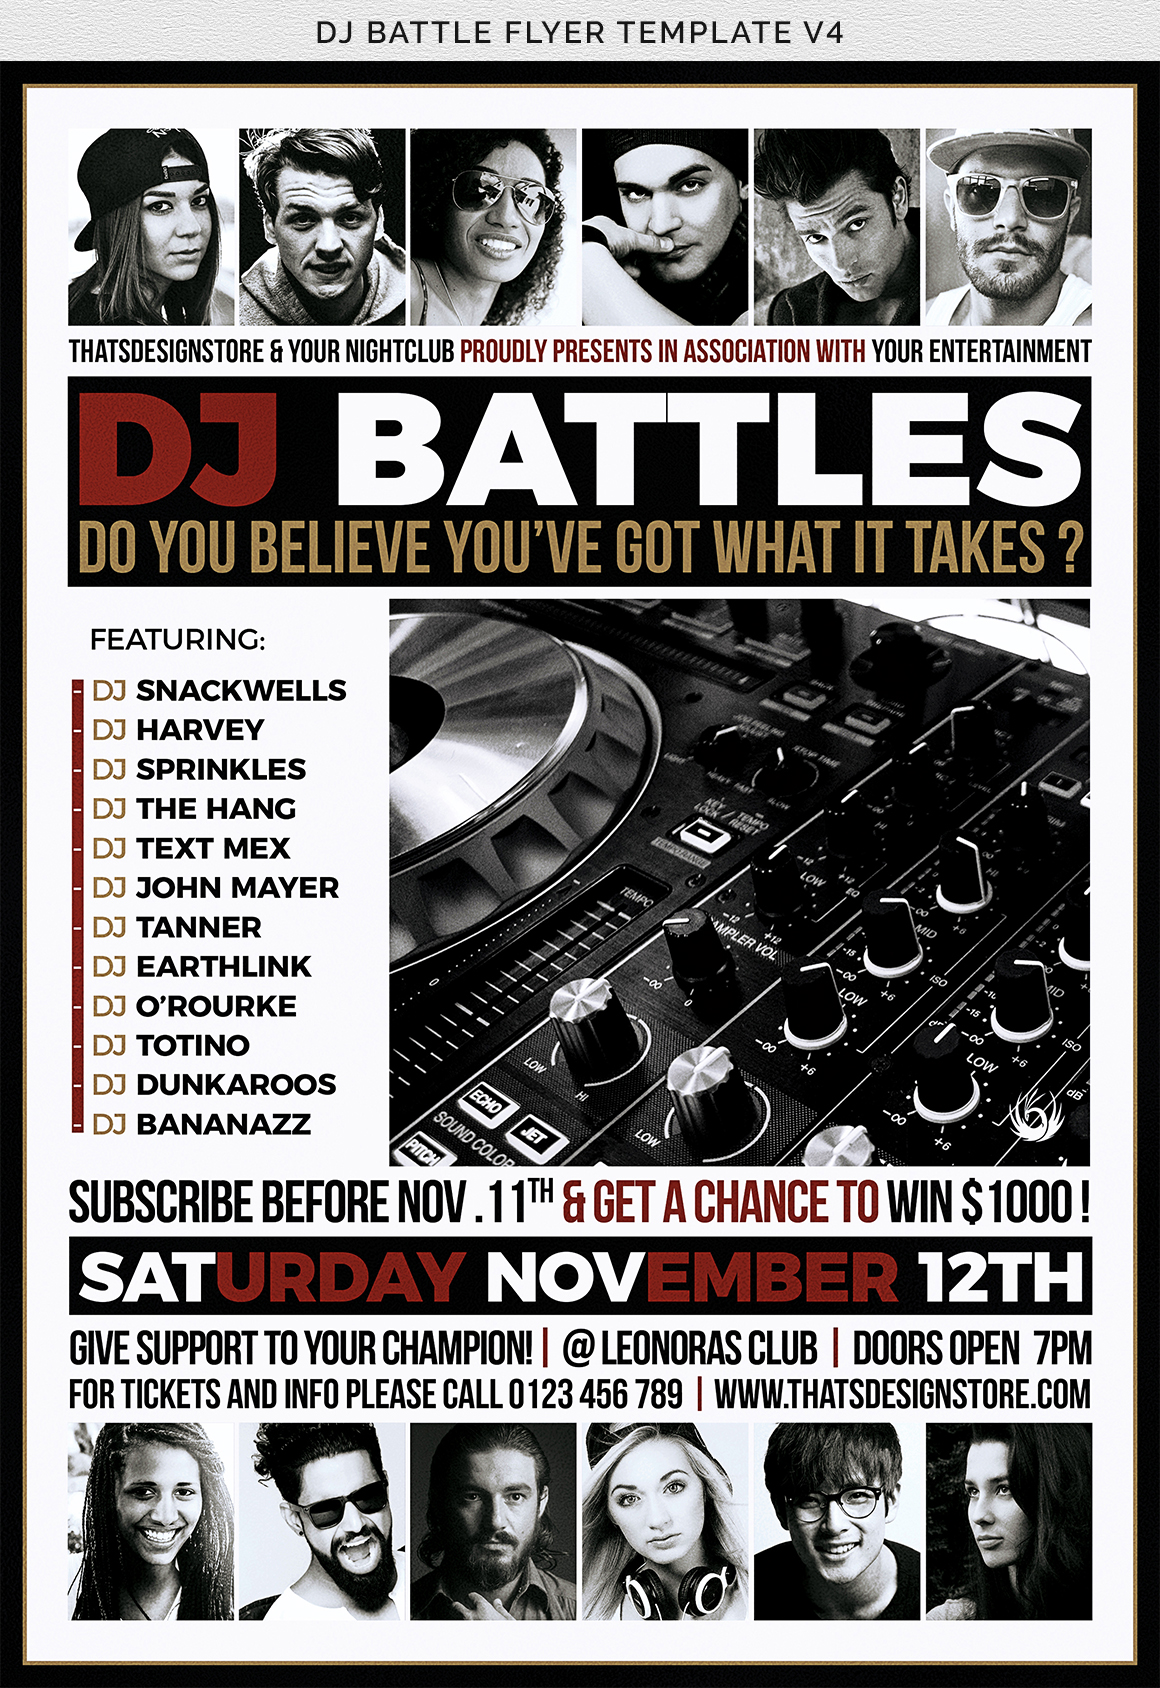 DJ Battle Flyer Template V4 example image 10